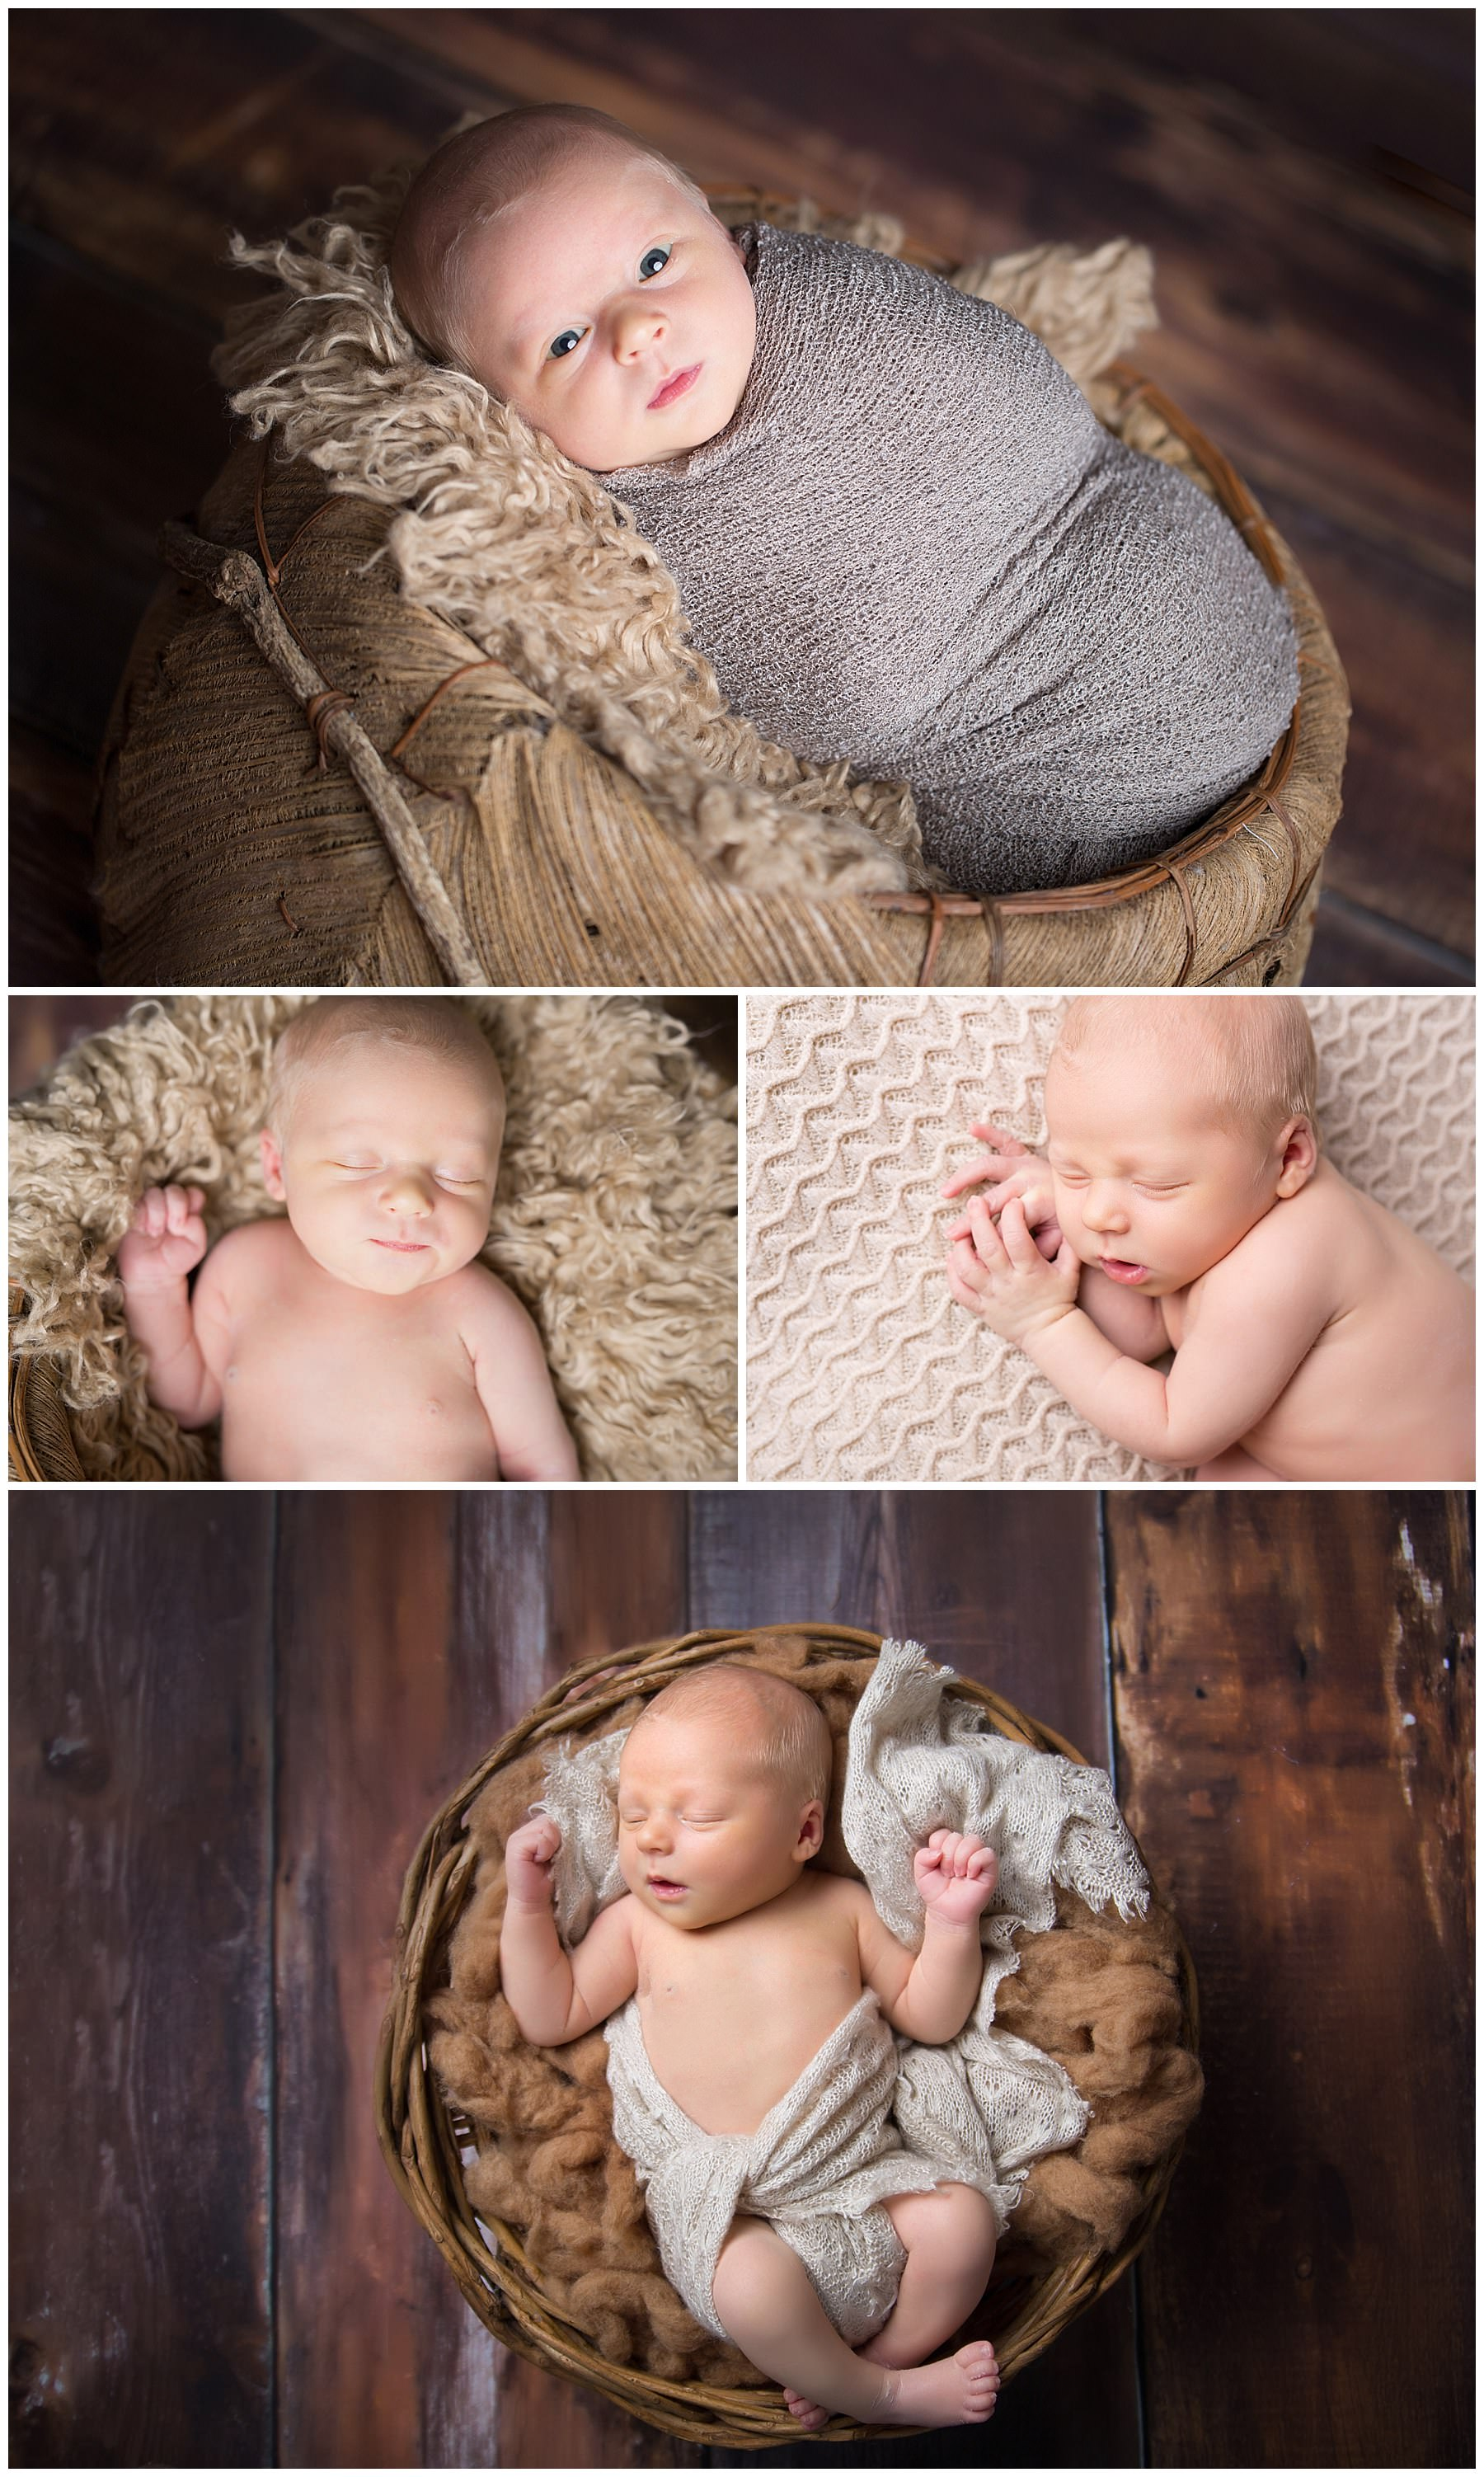 newborn photography newborn baby boy collage swaddled laying on curly brown blanket and wool wood flooring